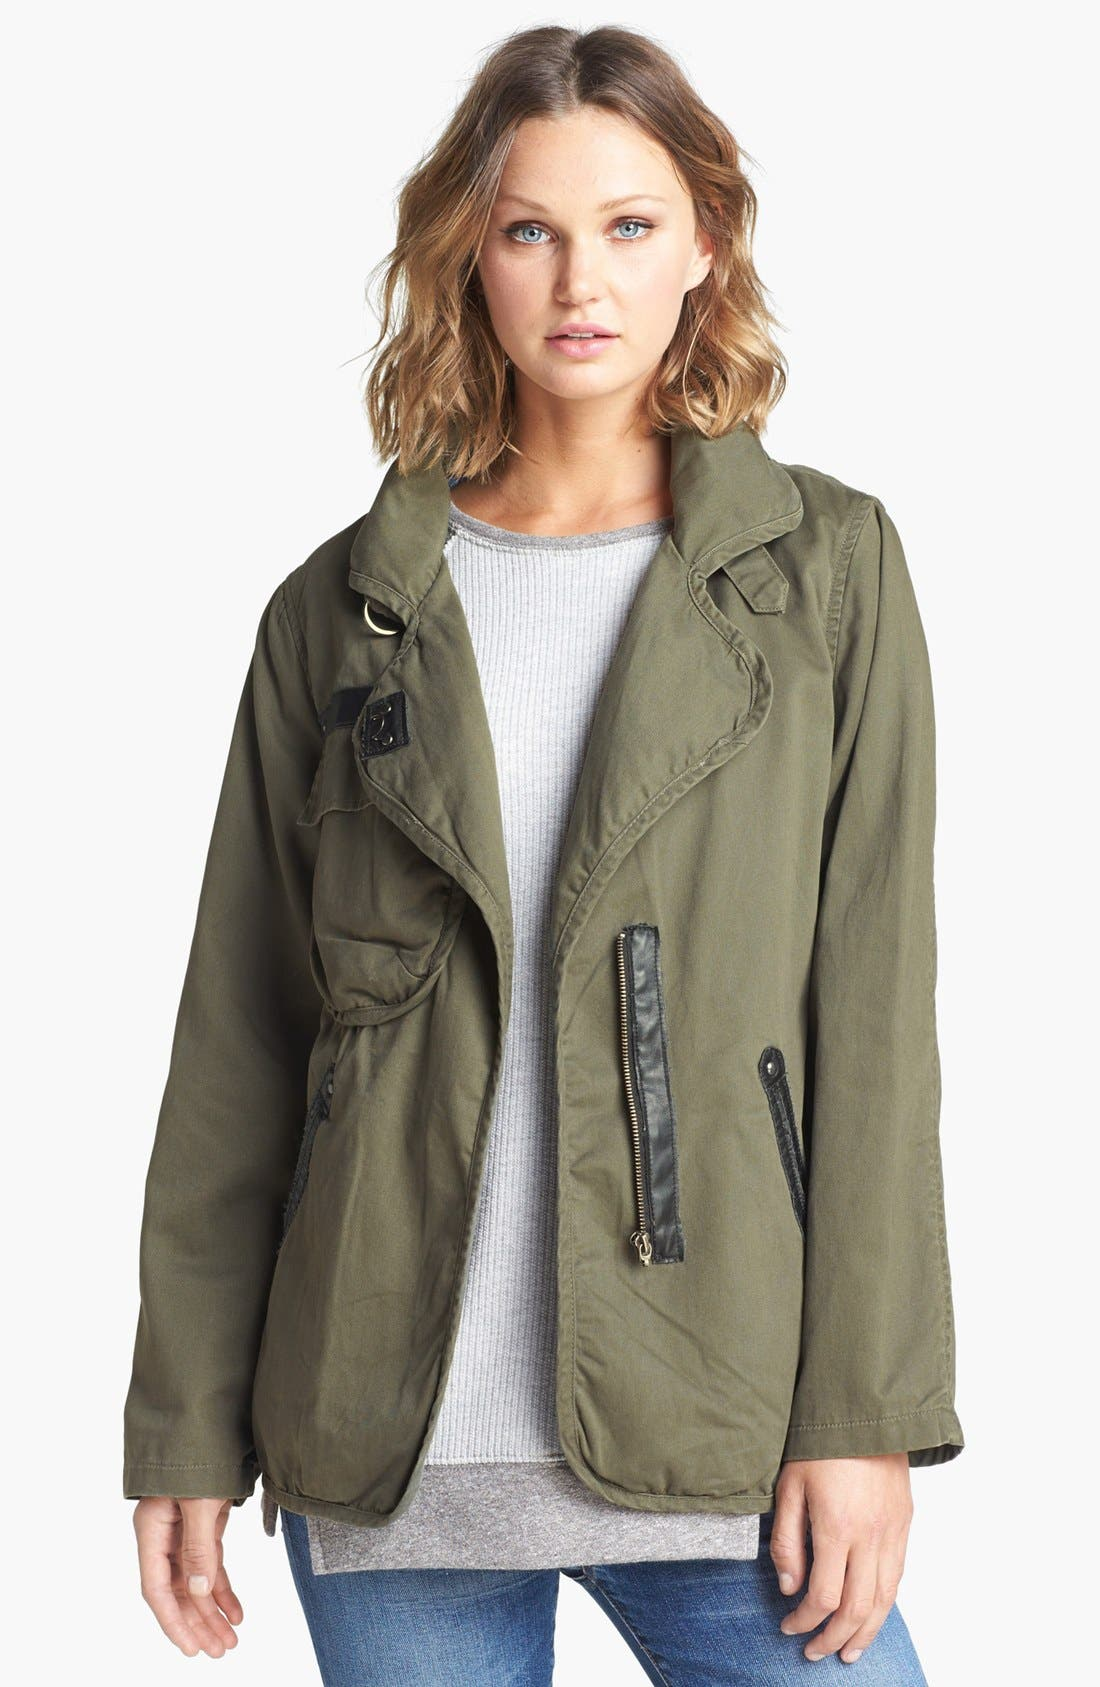 Alternate Image 1 Selected - Sanctuary Army Jacket